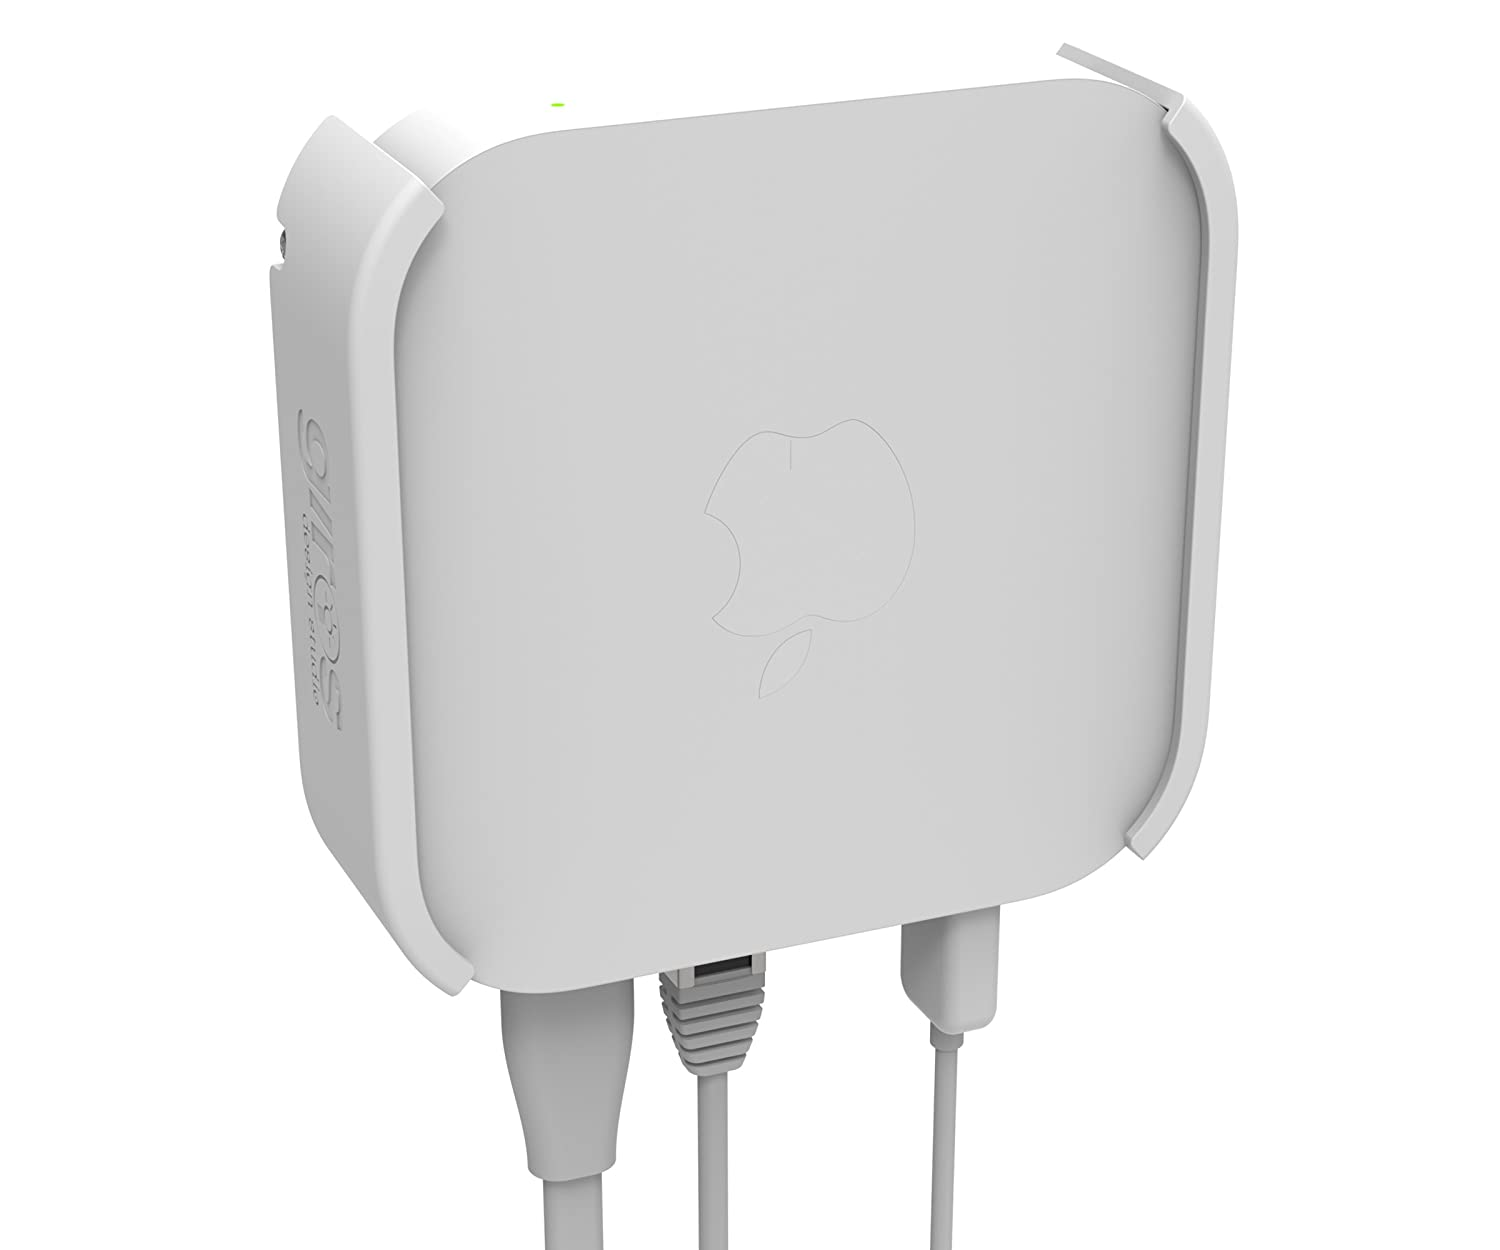 AirLock - Wall/Ceiling Mount for Apple AirPort Express Giros Design